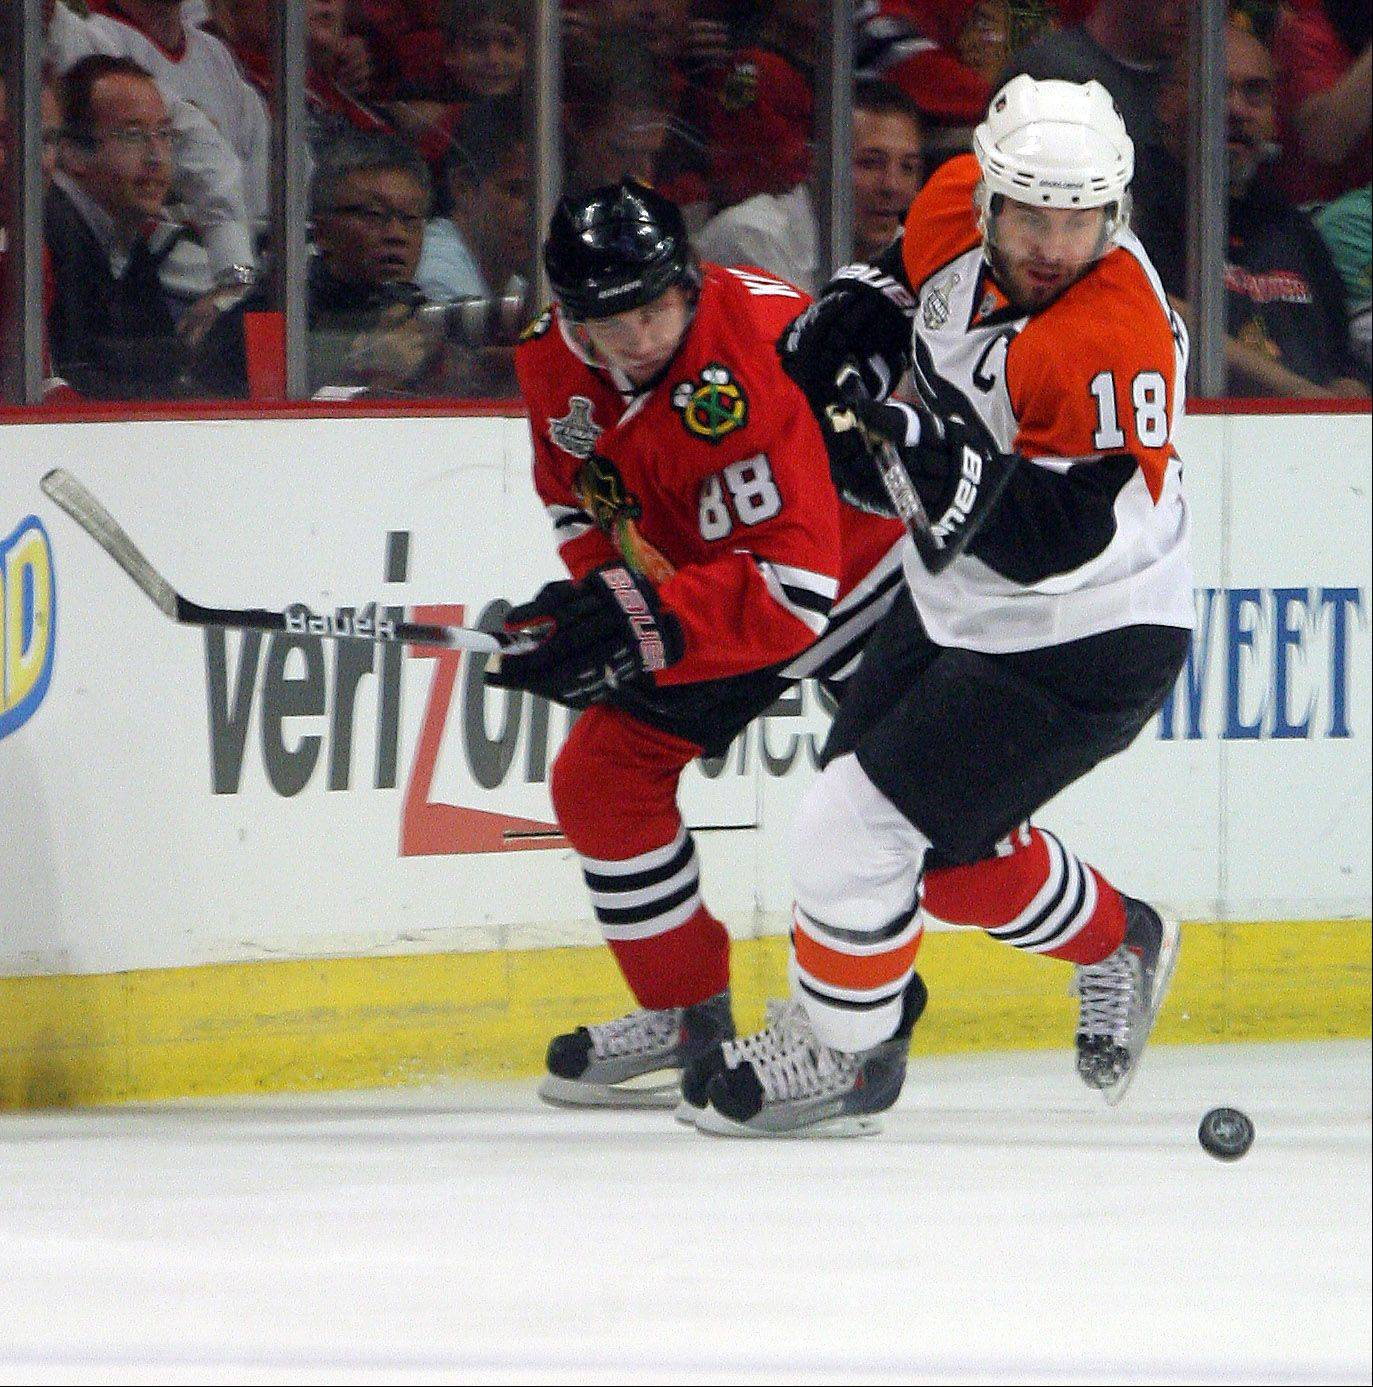 Patrick Kane and the Philadelphia Flyers' Mike Richards go for the puck during game one of the Stanley Cup finals at the United Center in Chicago Saturday.